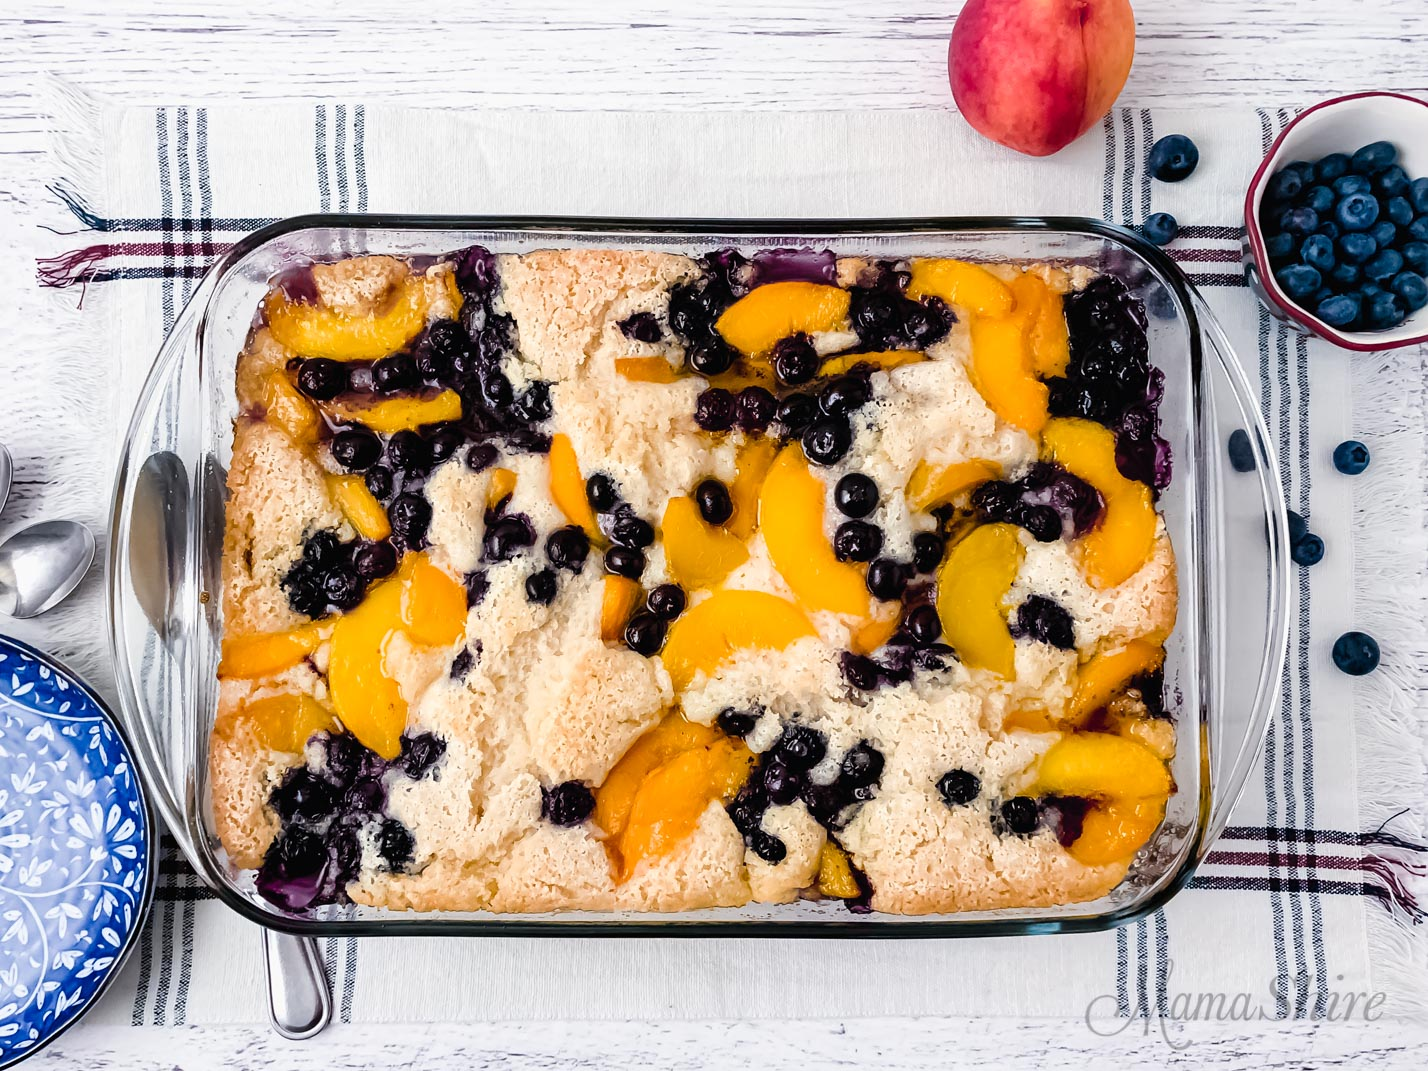 Freshly baked gluten-free peach blueberry cobbler.